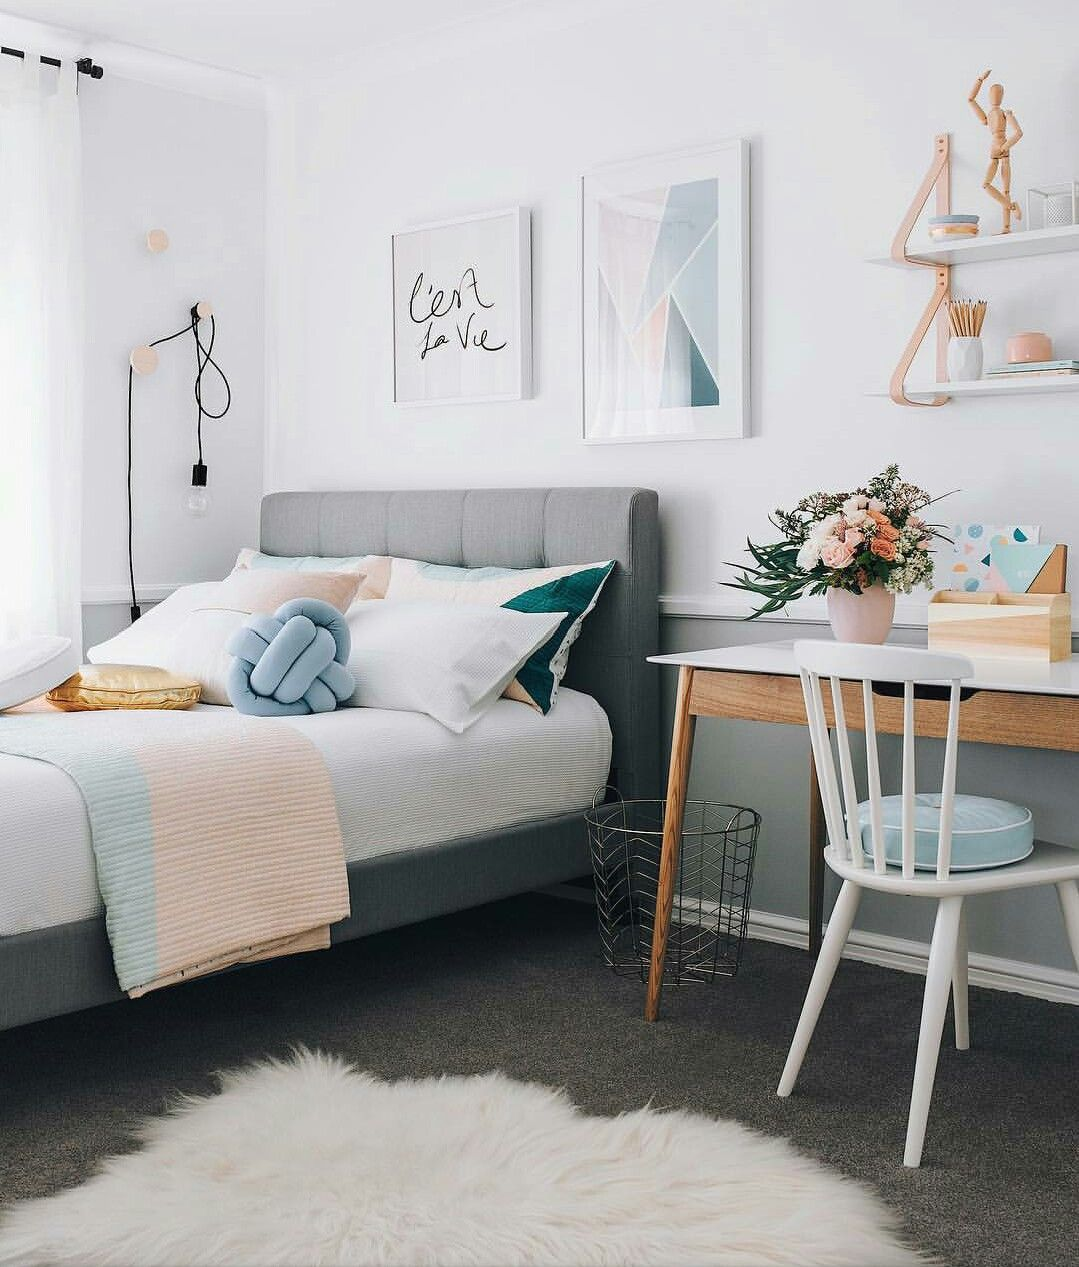 Bedroom goals | Dream Space | Pinterest | Bedrooms, Room and Room ideas